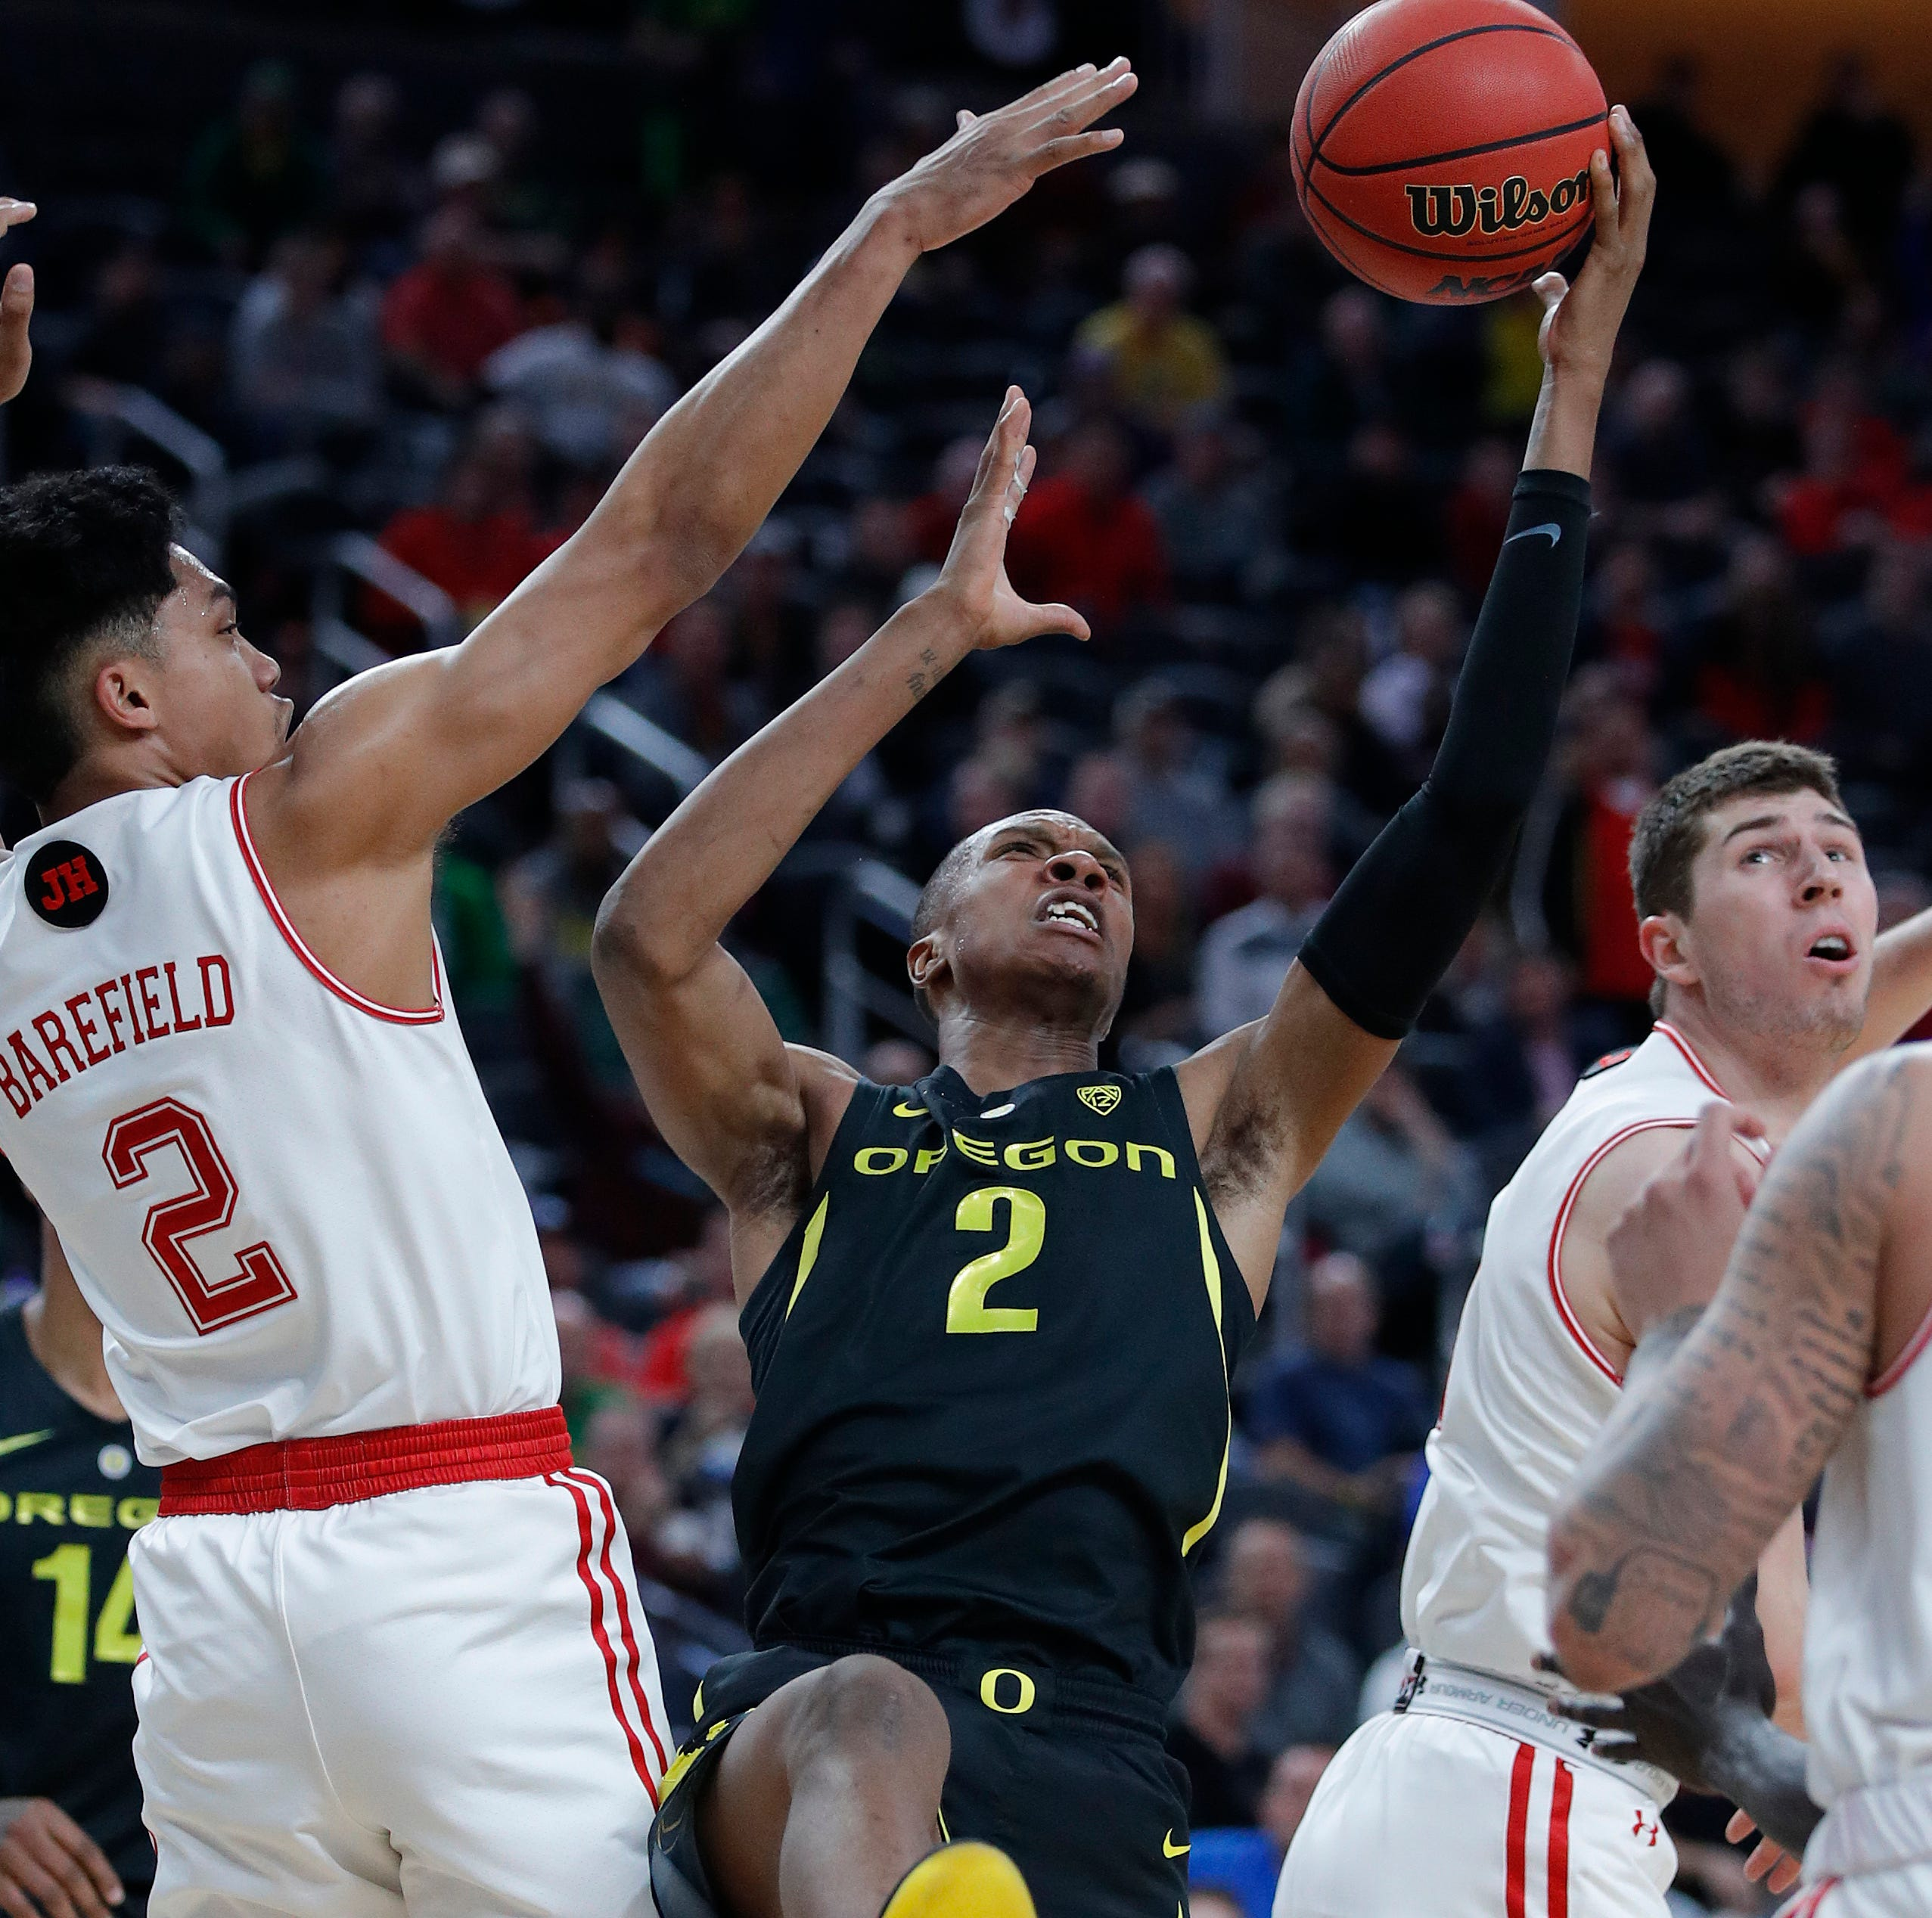 Ducks basketball: Oregon locks down Utah in 66-54 win in Pac-12 quarterfinals